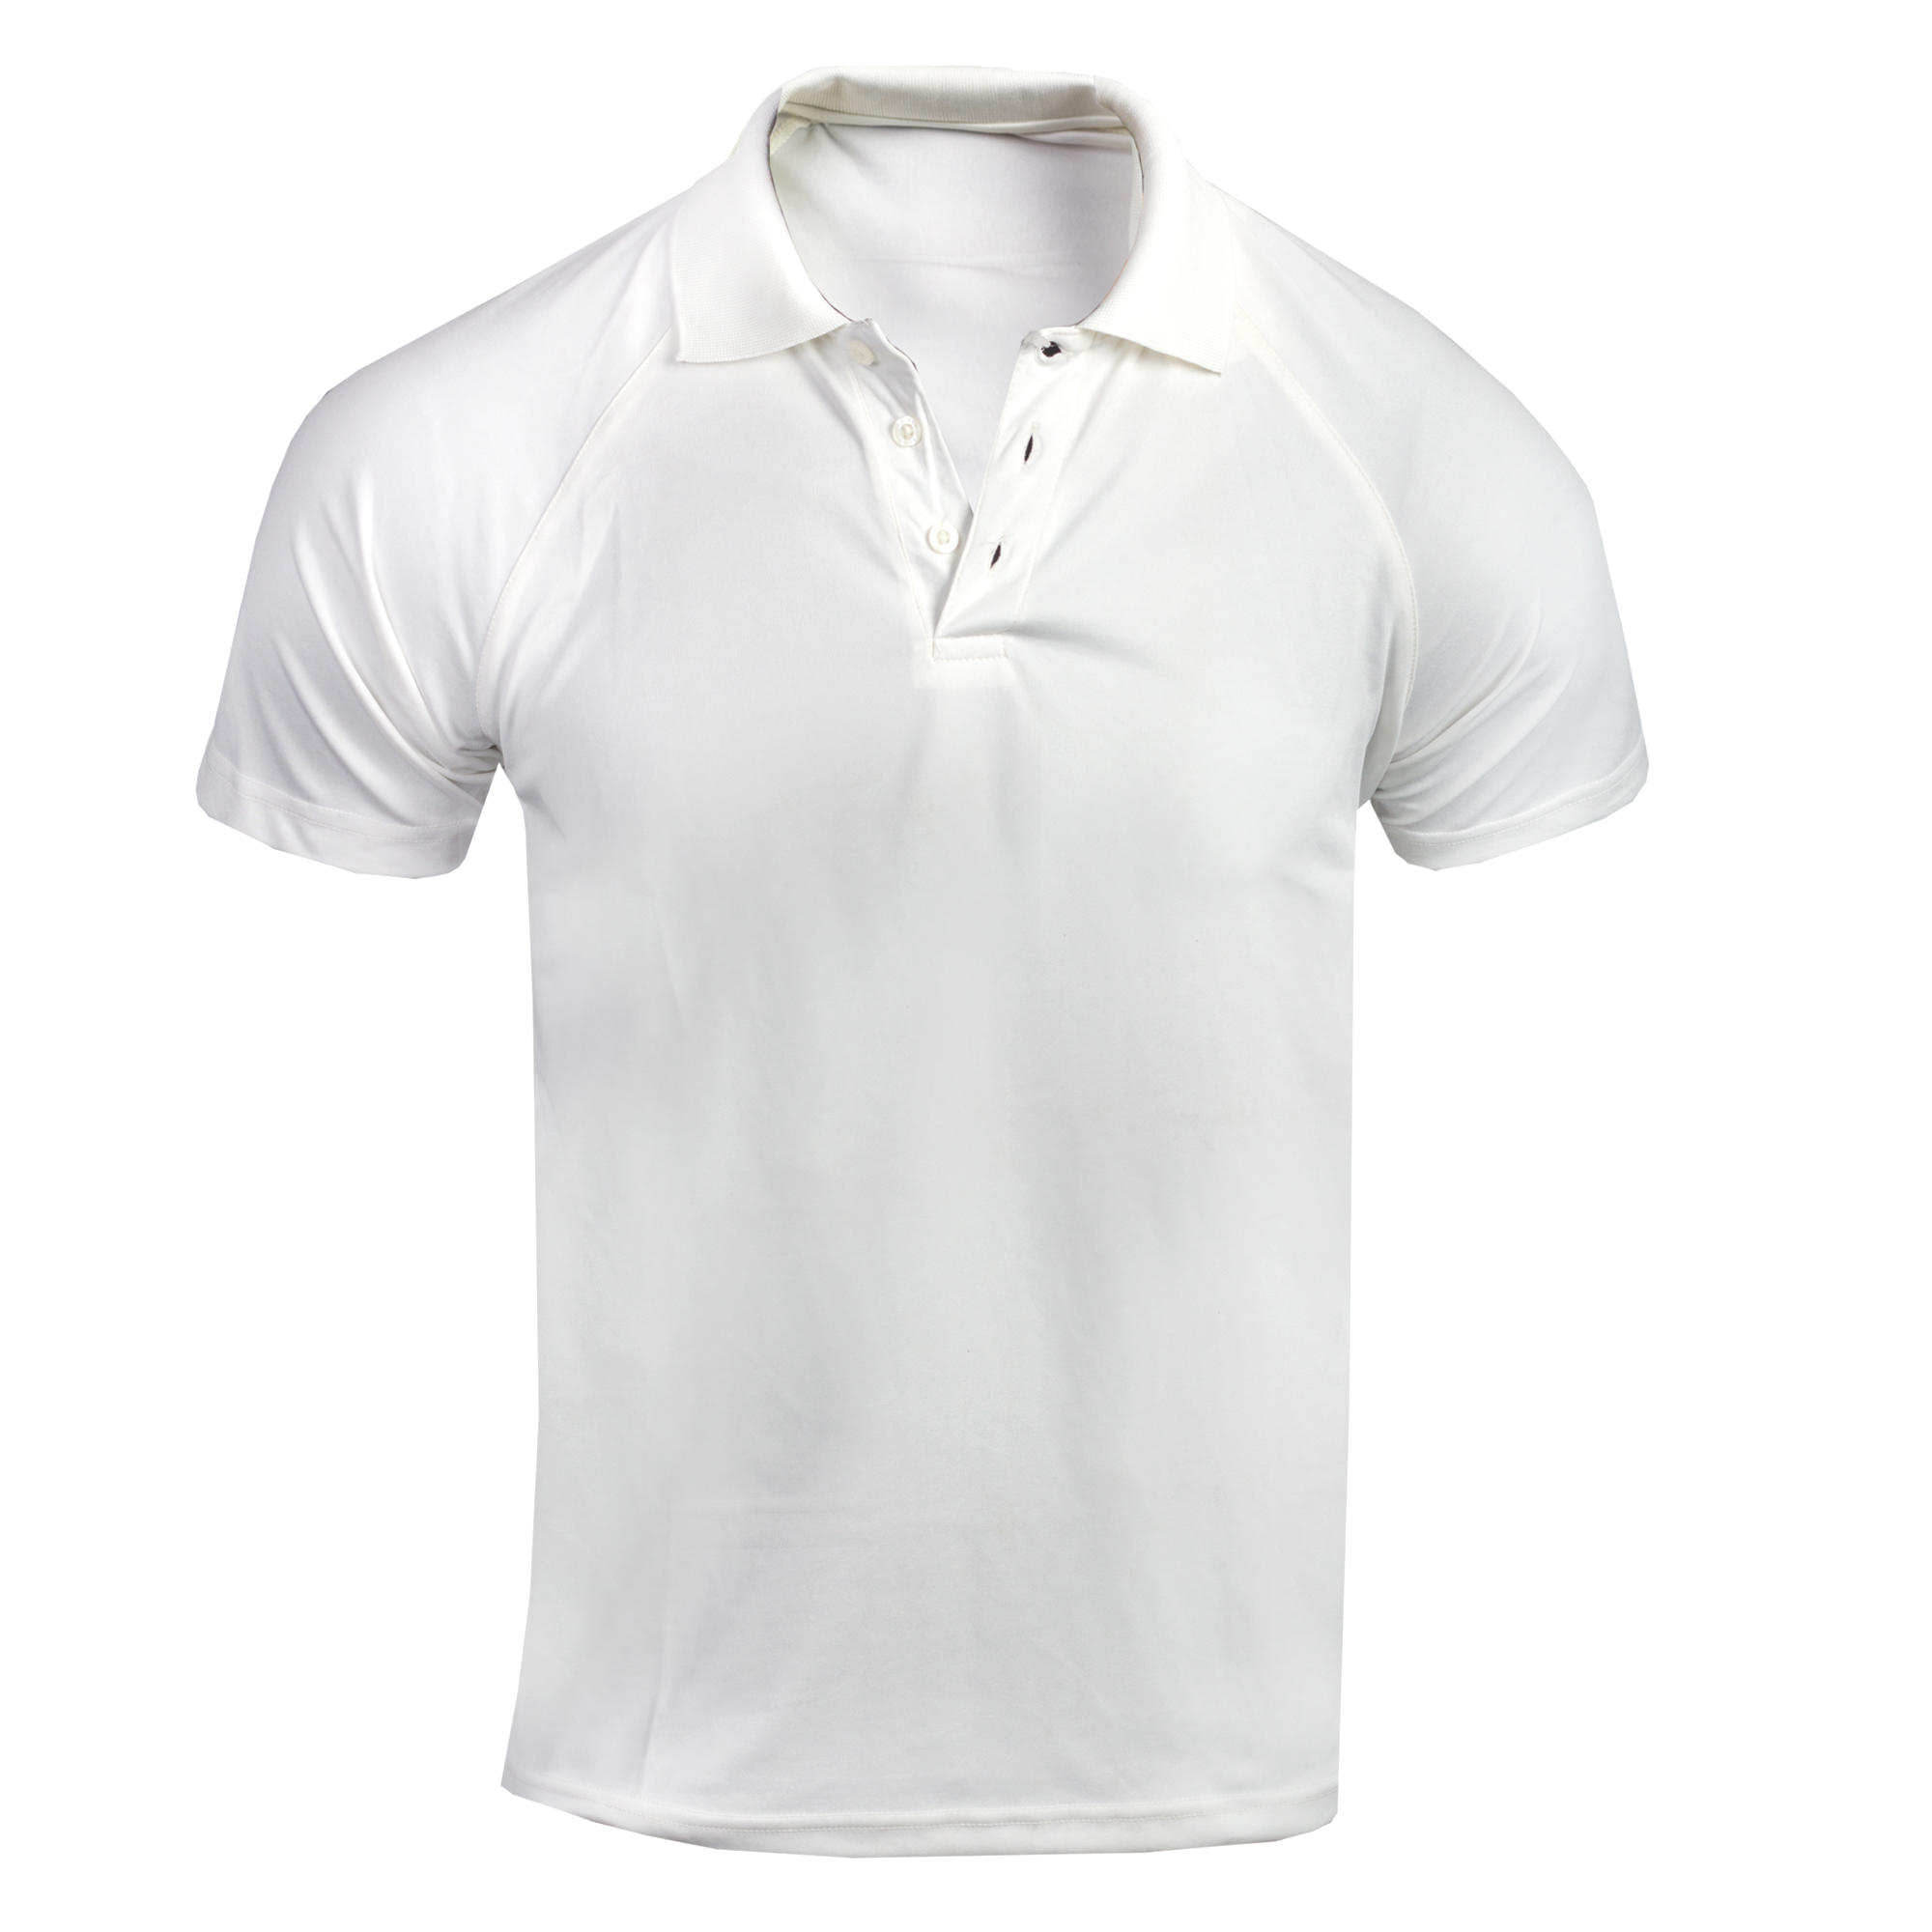 JR CRICKET WHITE...